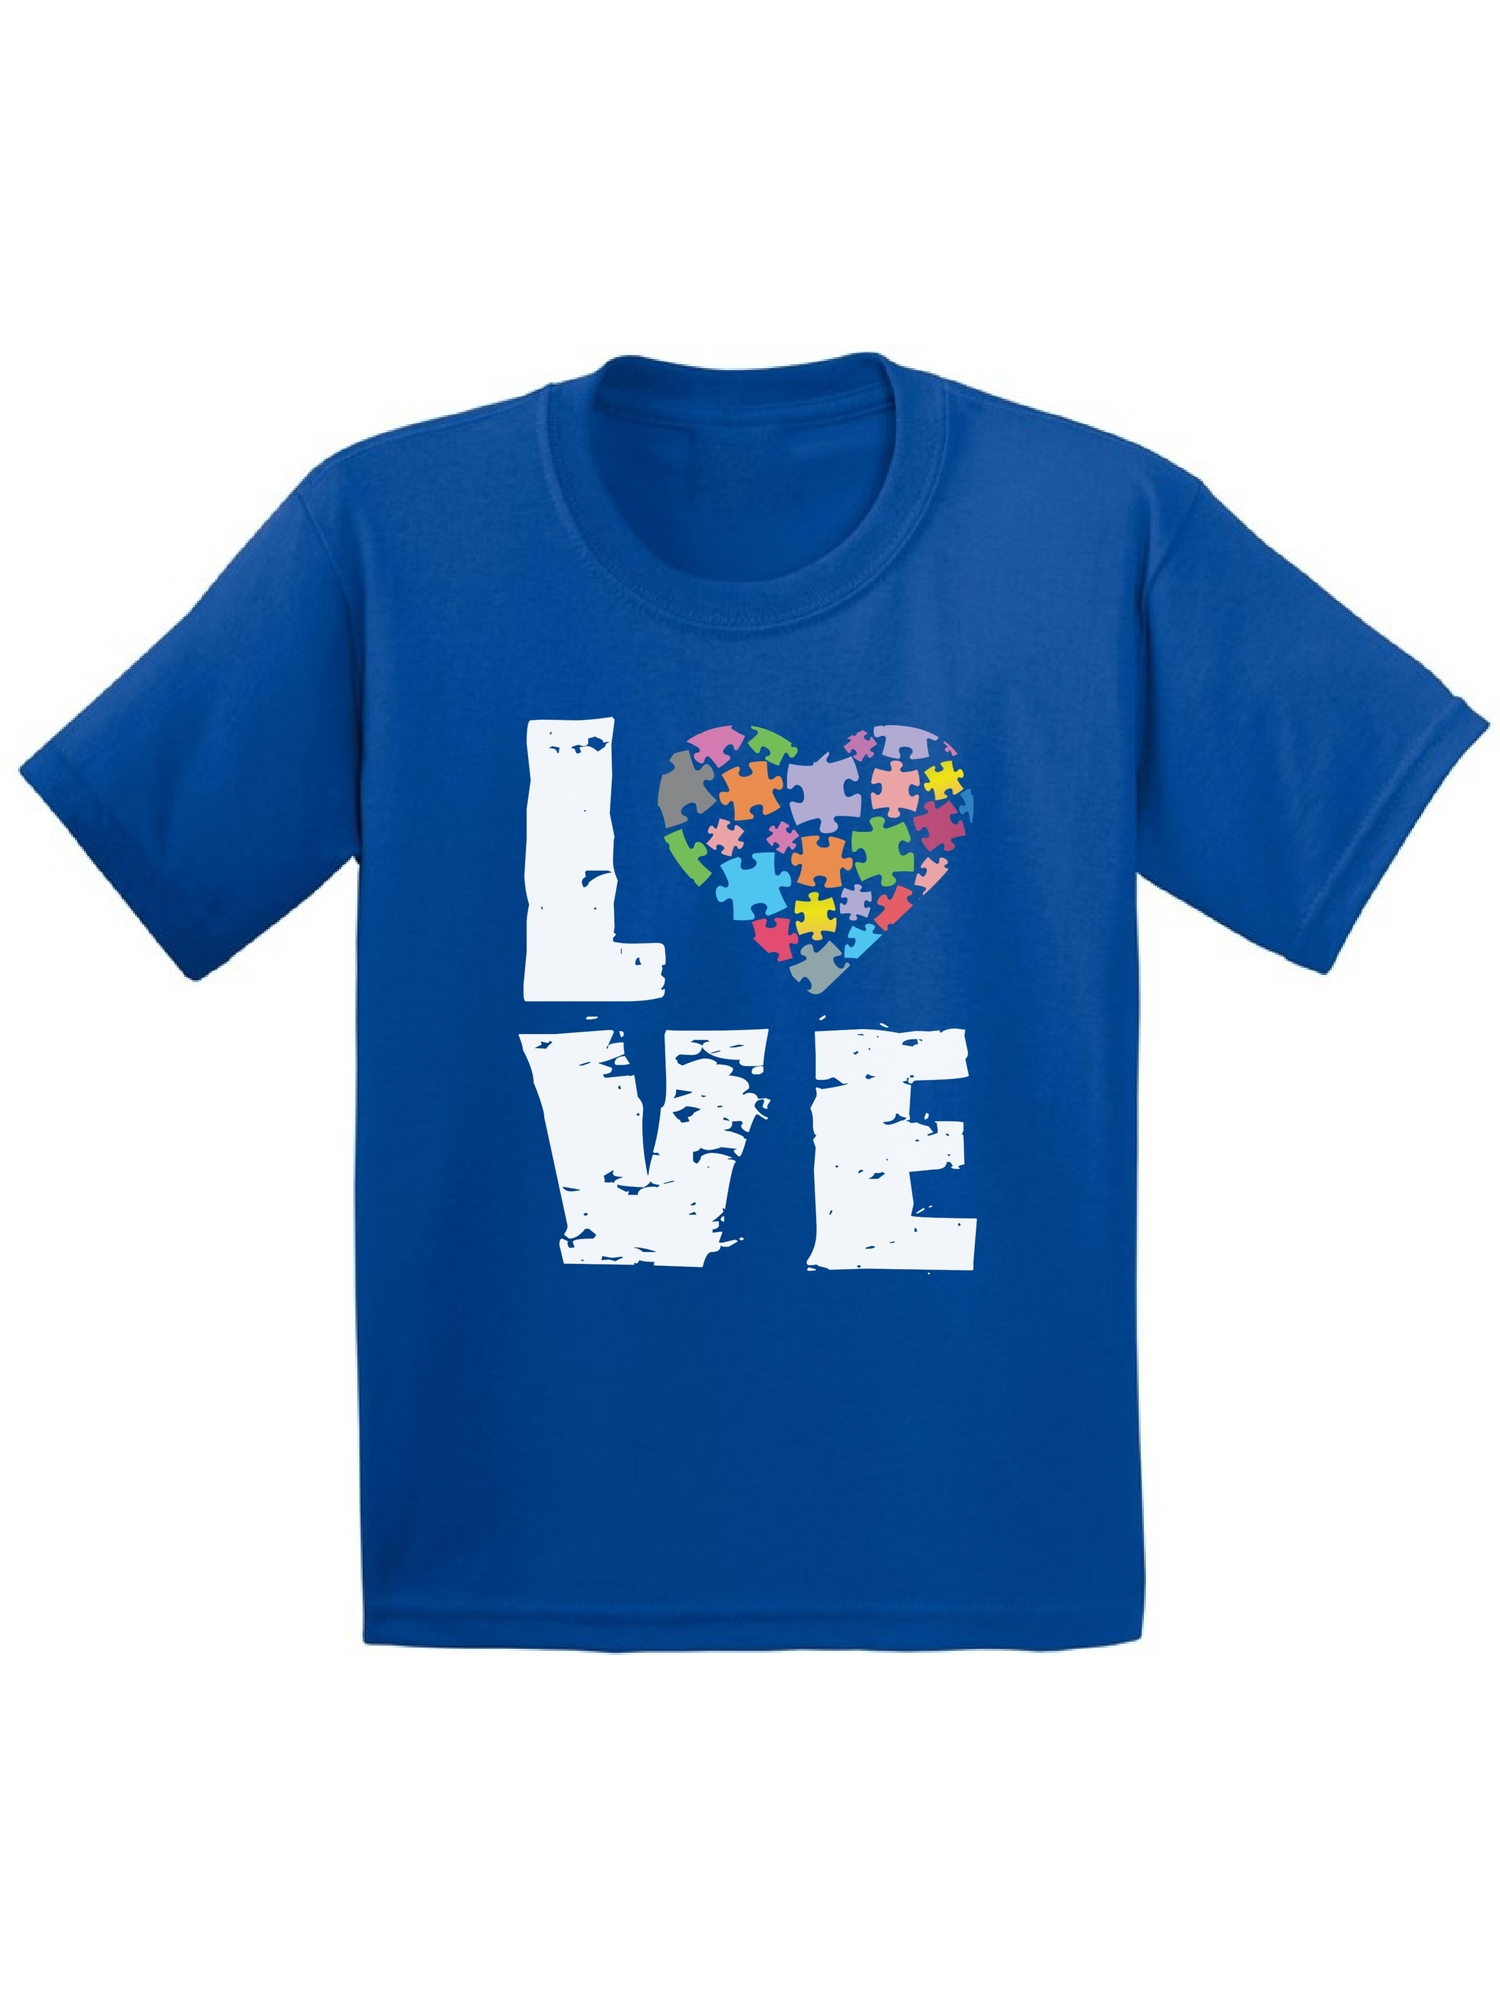 Awkward Styles Youth Love Puzzles Autism Awareness Graphic Youth Kids T-shirt Tops Autistic Support